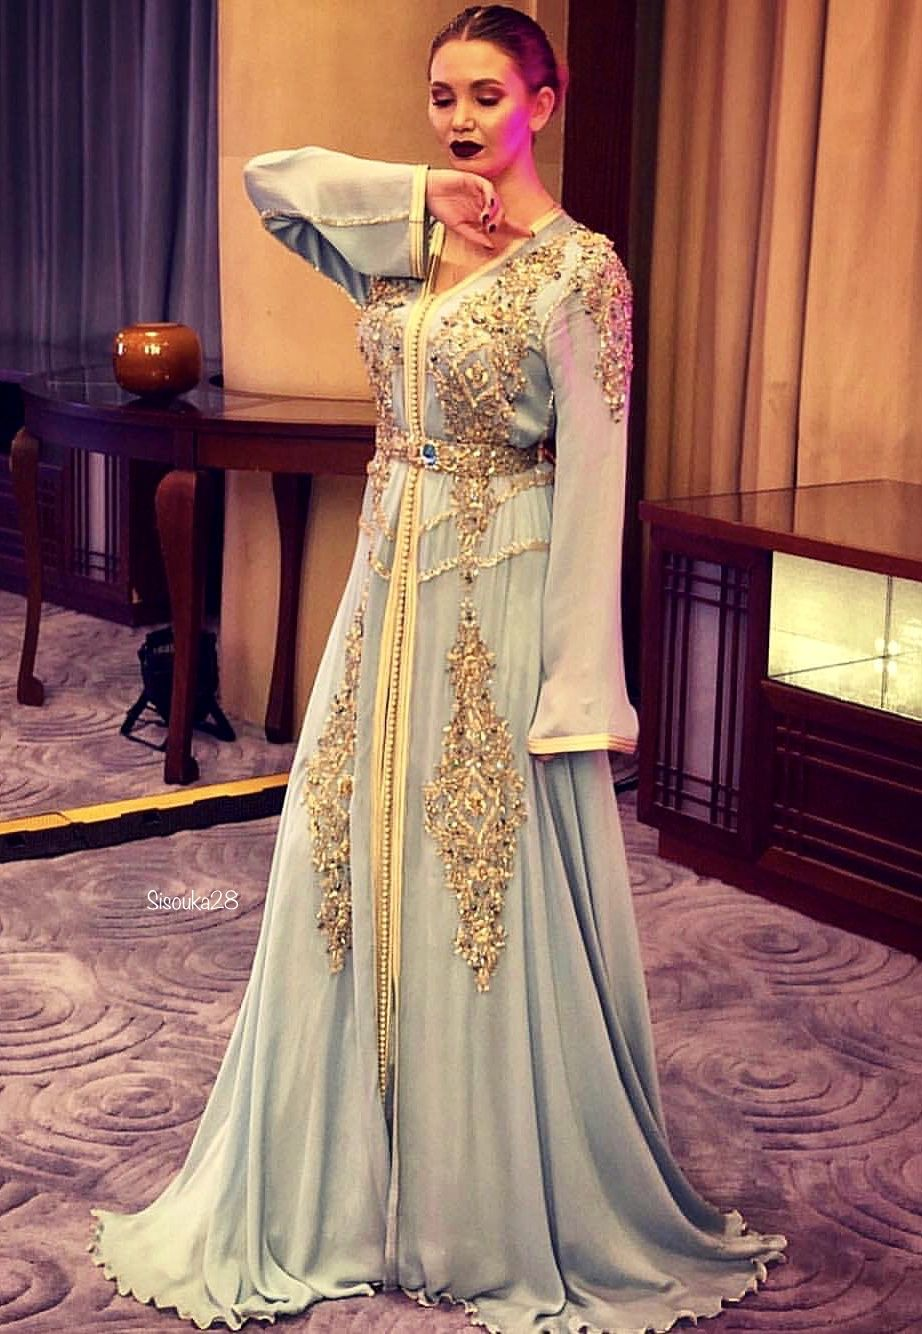 Maria Luxe | Moroccan dress, Dress to impress,